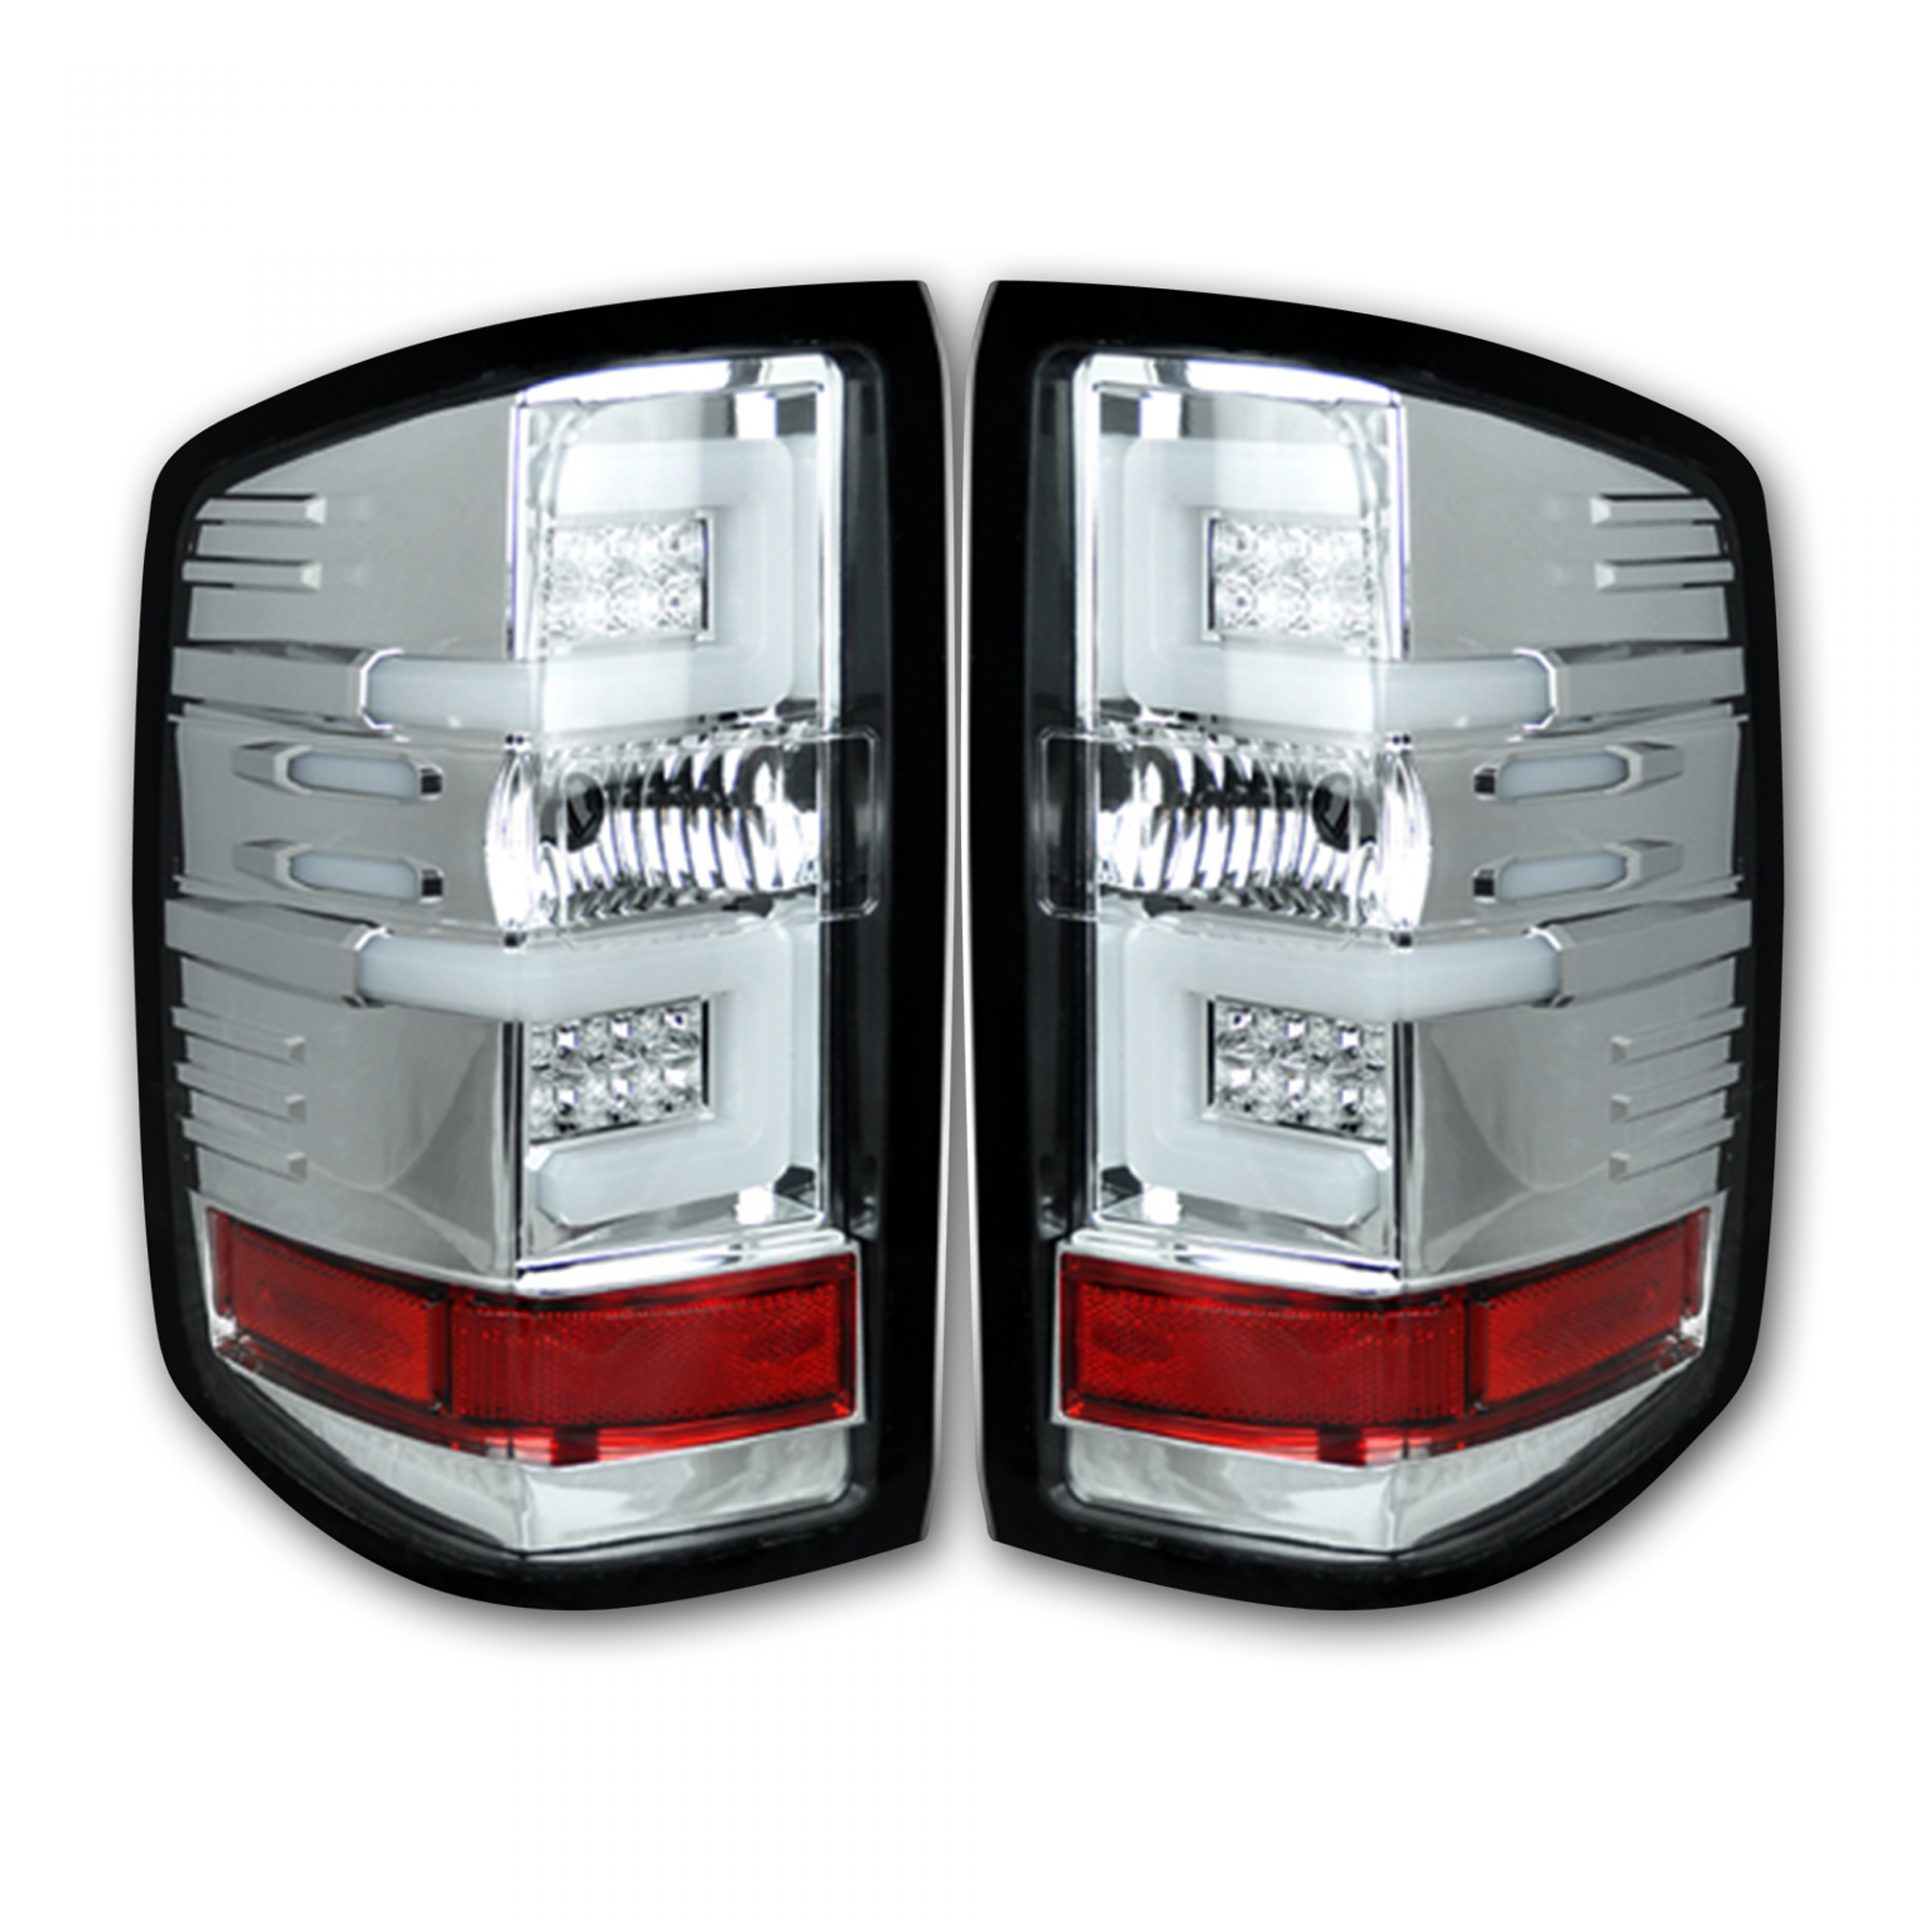 Recon 264297cl Chevy Silverado 16 17 1500 2500 3500 Replaces Factory Oem Led Tail Lights Only Also Fits Gmc Sierra 15 Dually Body Style With